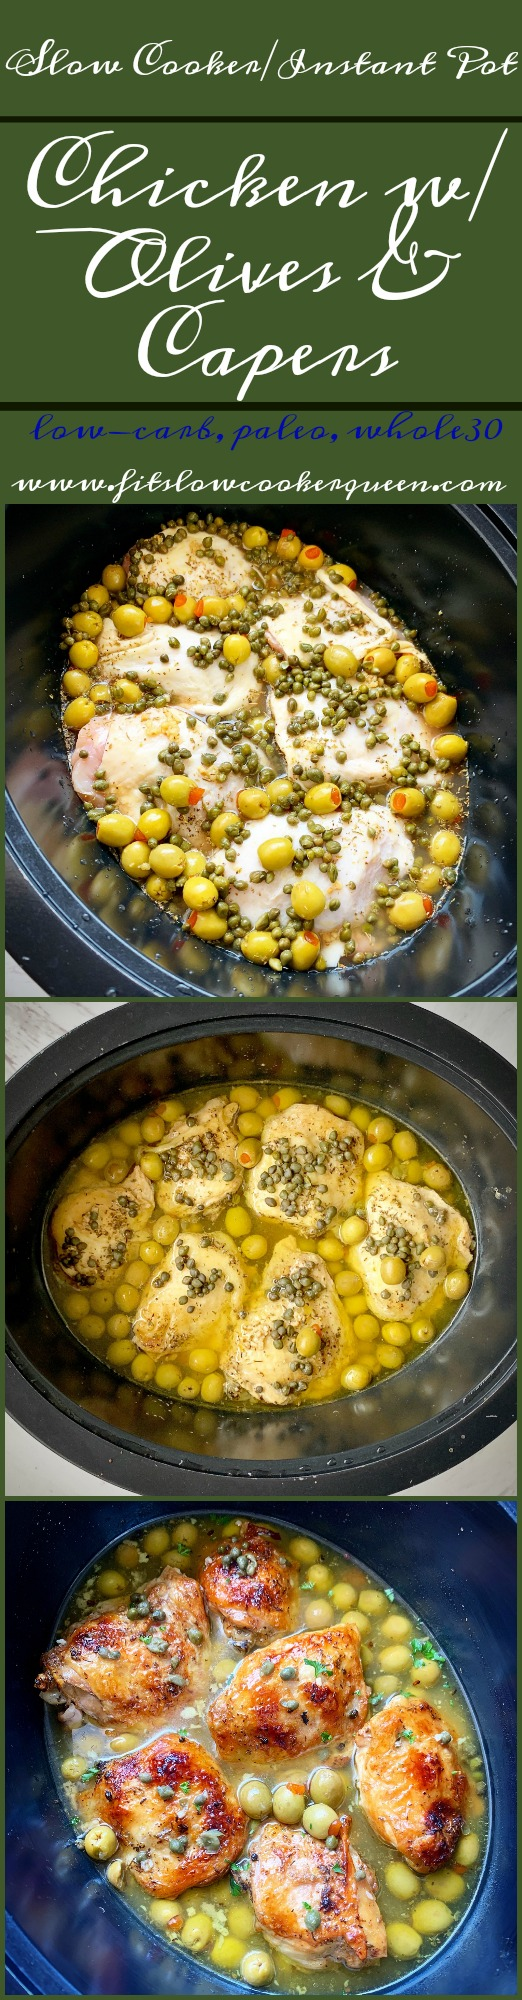 another pinterest pin for Slow Cooker_Instant Pot Chicken, Olives & Capers (Low-Carb, Paleo, Whole30)